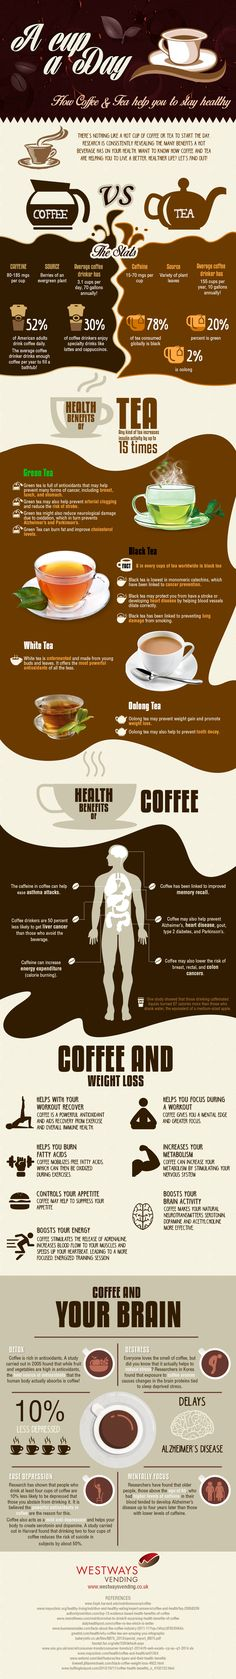 Coffee | Tipsögraphic | More coffee tips at http://www.tipsographic.com